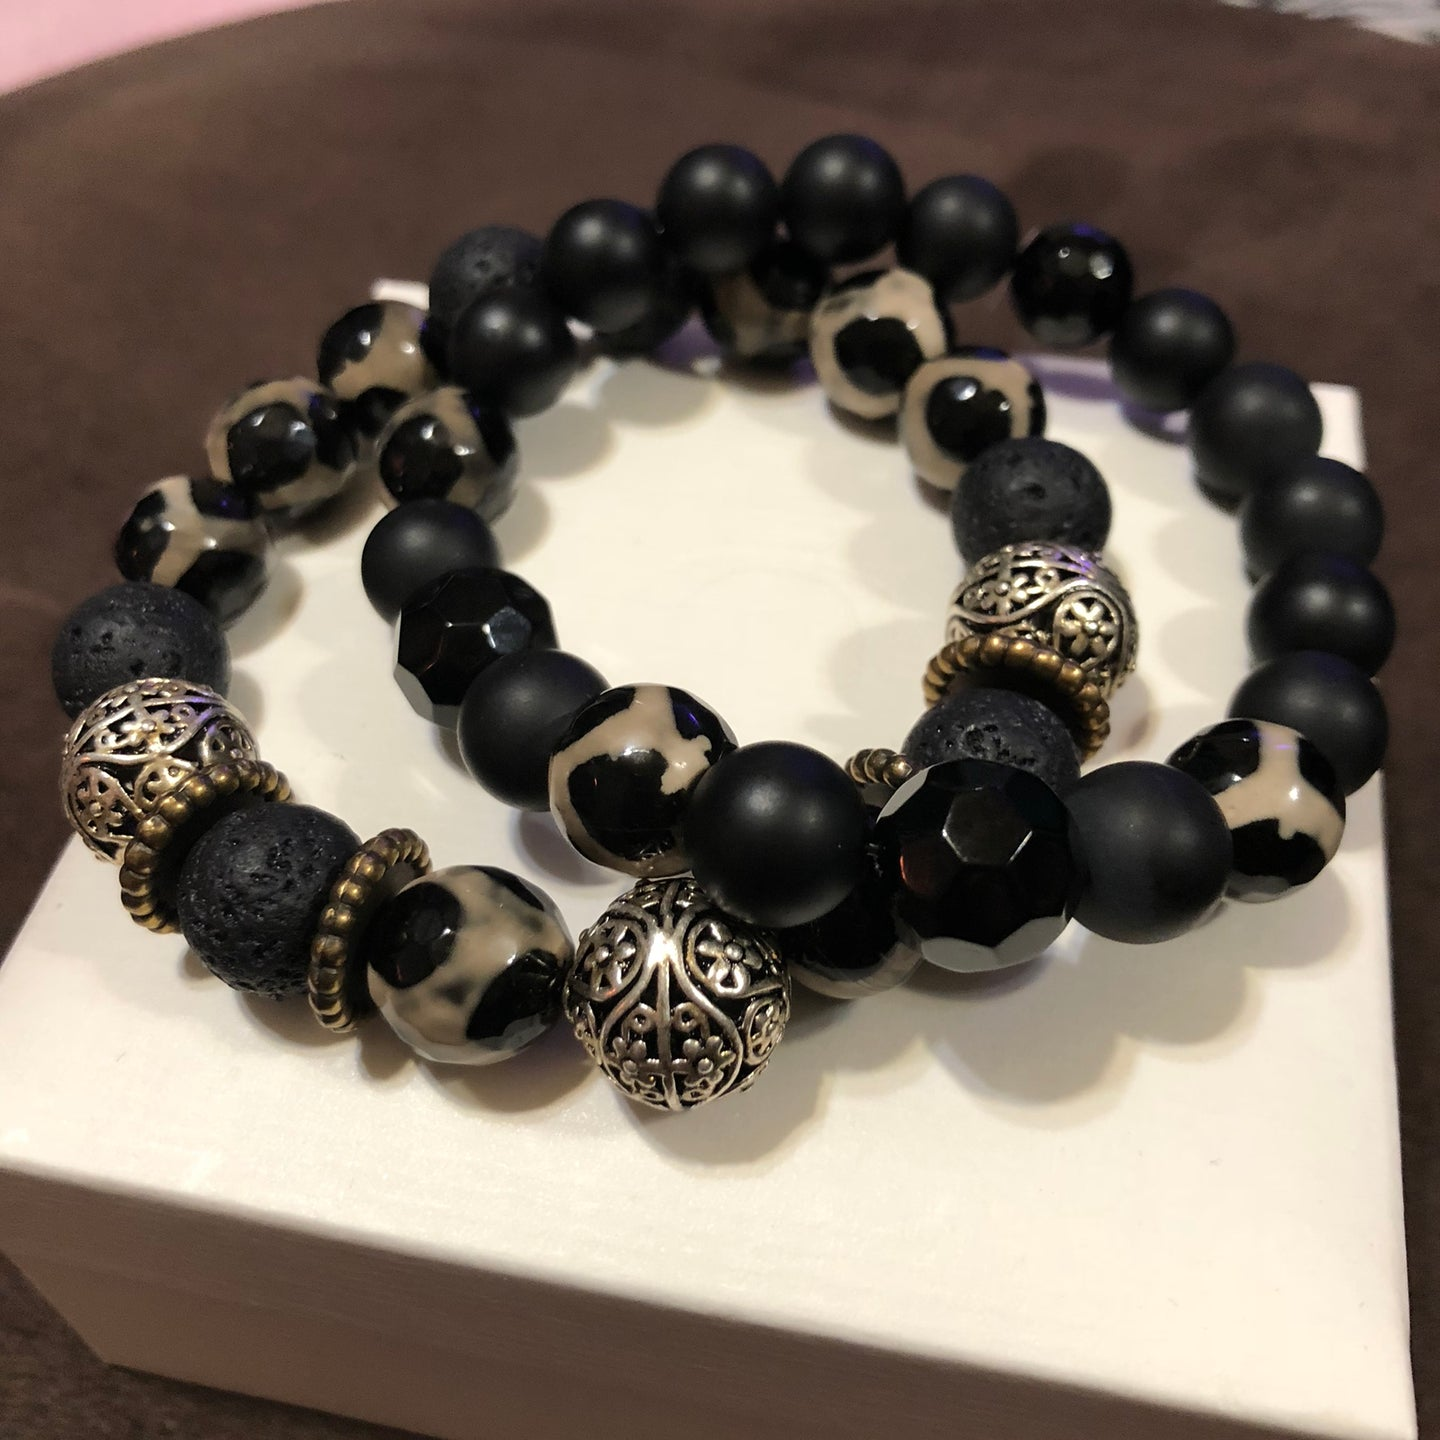 Men's brown Agate bracelet set with Lava Rocks Onyx Obsidian and Metal spacers